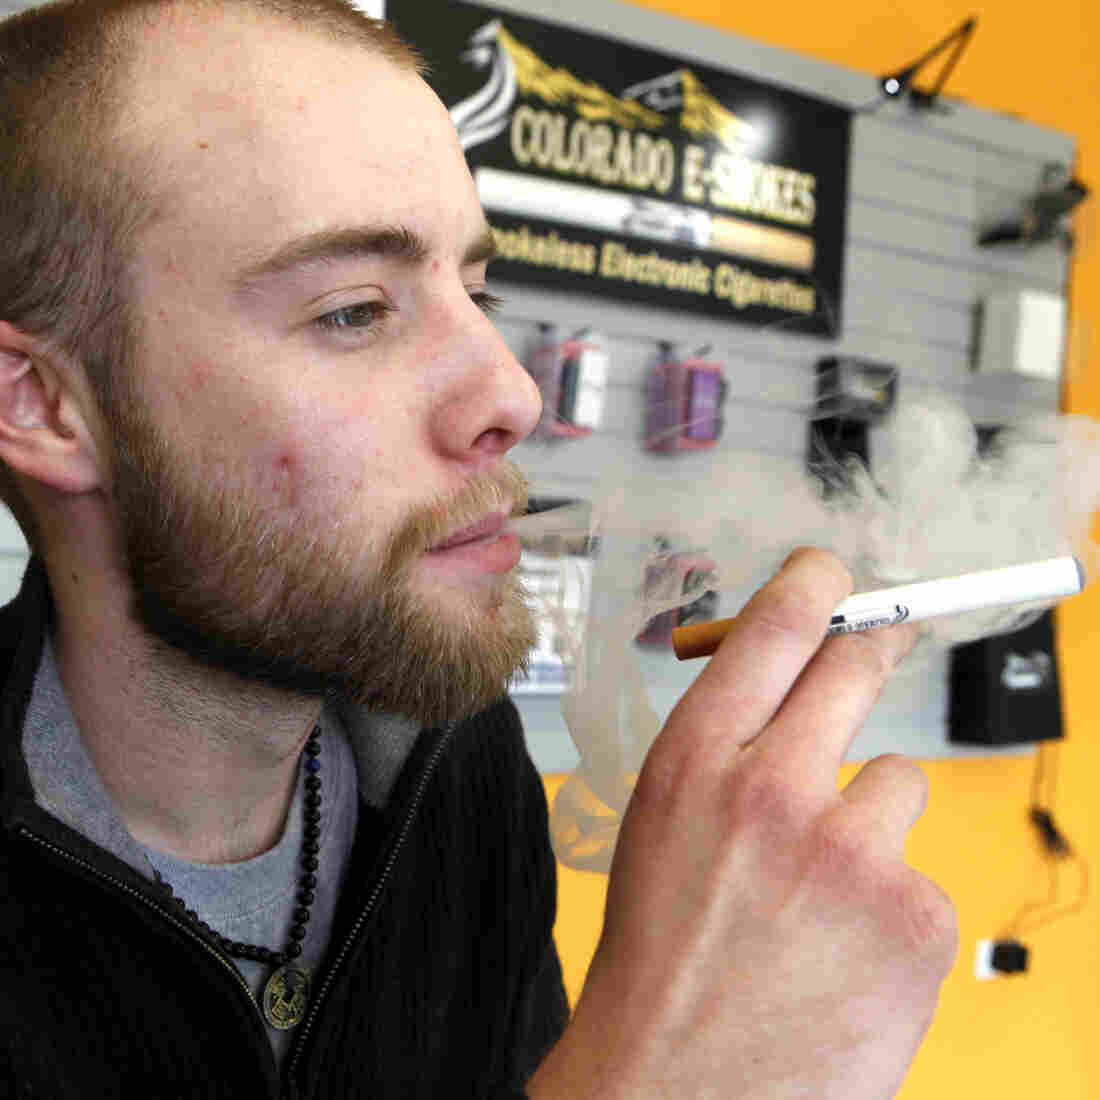 Lobbyists Amp Up Efforts To Sell Washington On E-Cigarettes